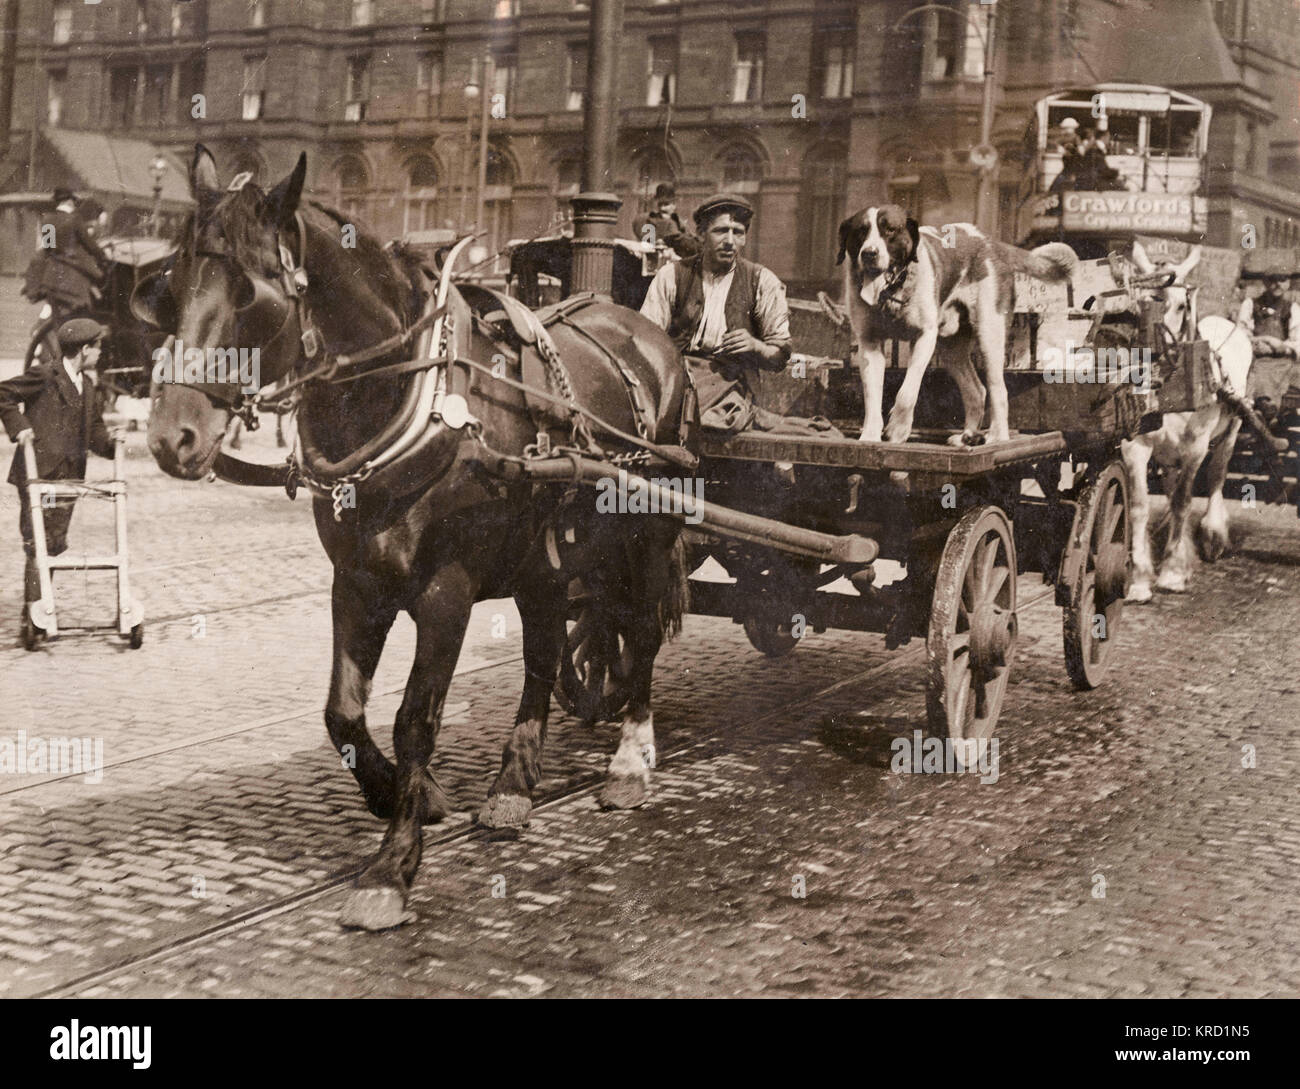 A driver who did not need police protection -- a man with his horse and cart, and a dog for good measure.  The Liverpool - Stock Image